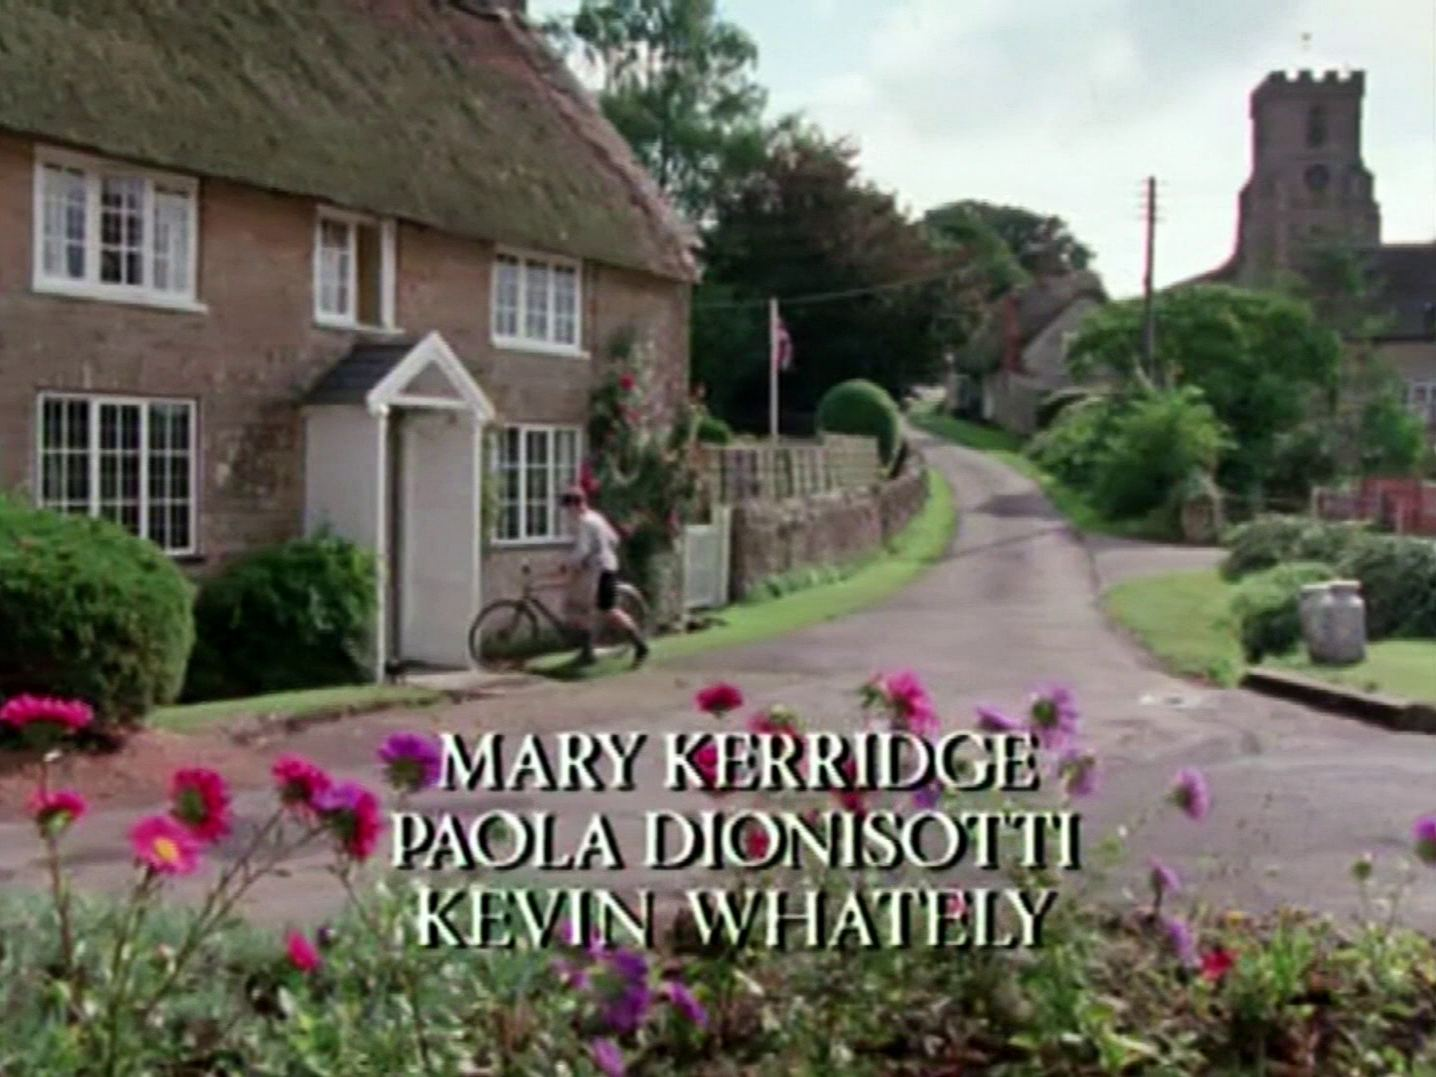 Main title from the 1985 'A Murder Is Announced' episode of Agatha Christie's Miss Marple (1984-1992) (8). Mary Kerridge, Paola Dionisotti, Kevin Whately